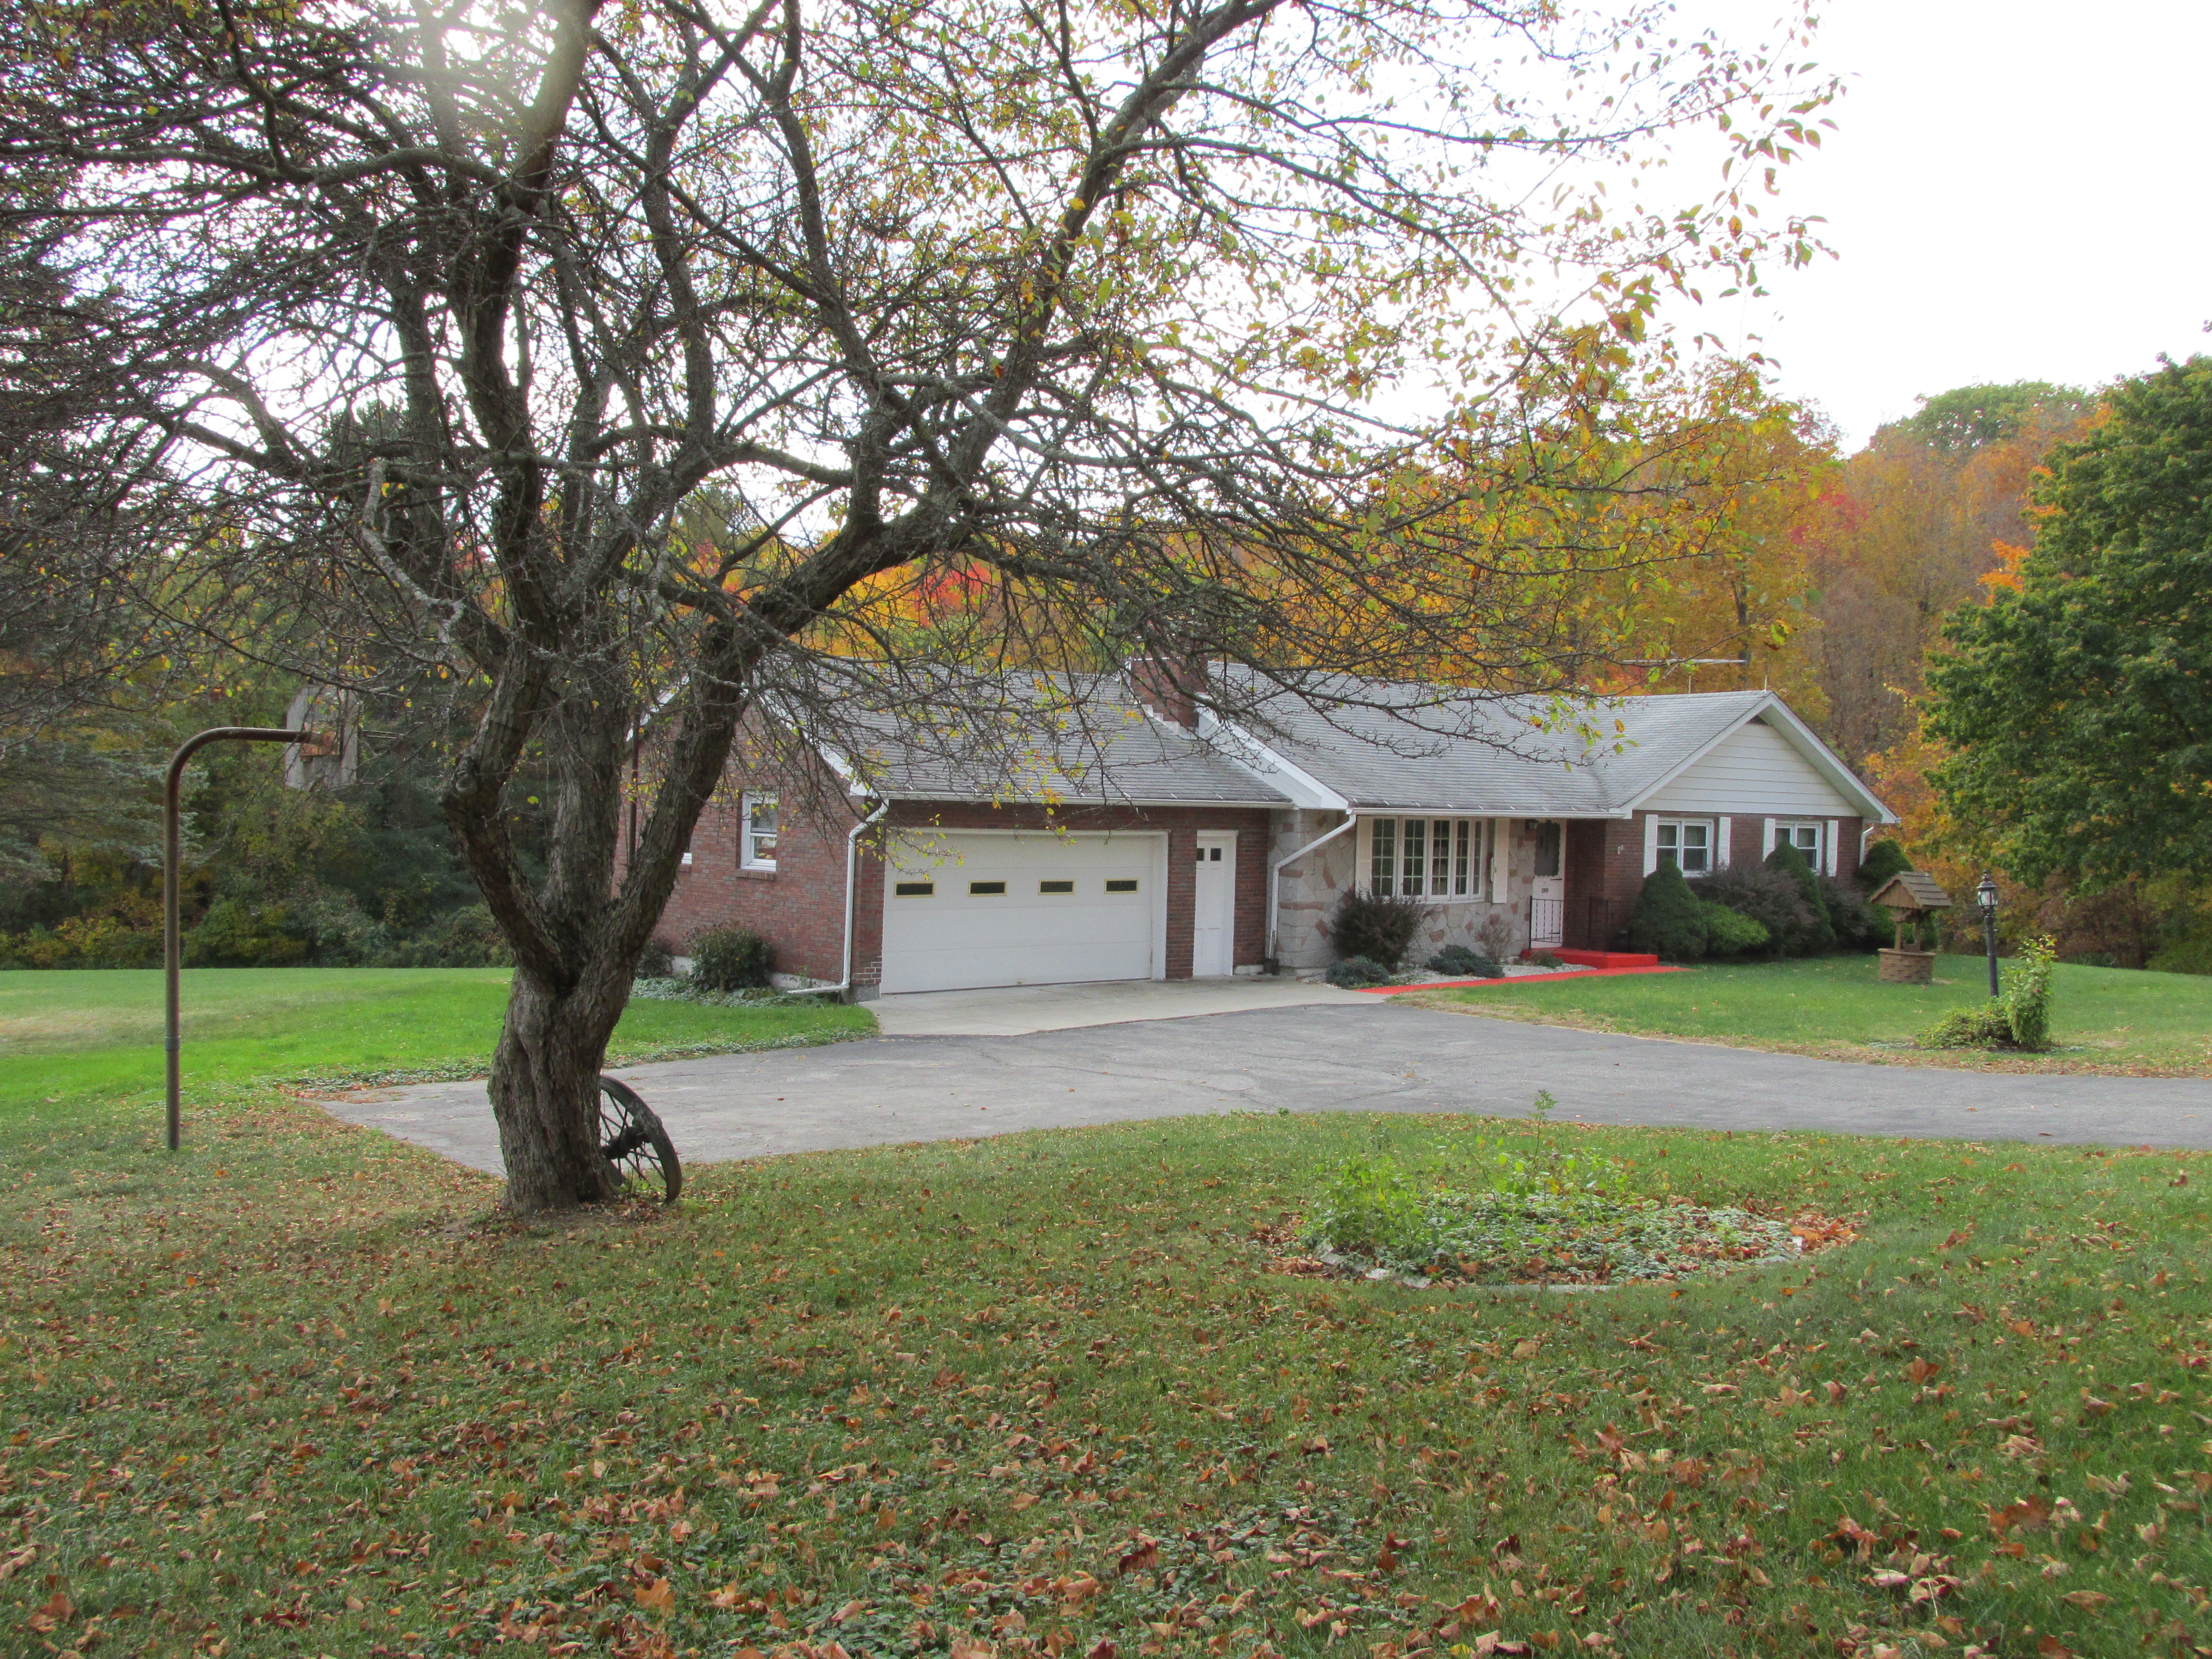 Single Family Home for Sale at A County Lover's Dream 290 Richards Rd New Hartford, Connecticut, 06057 United States